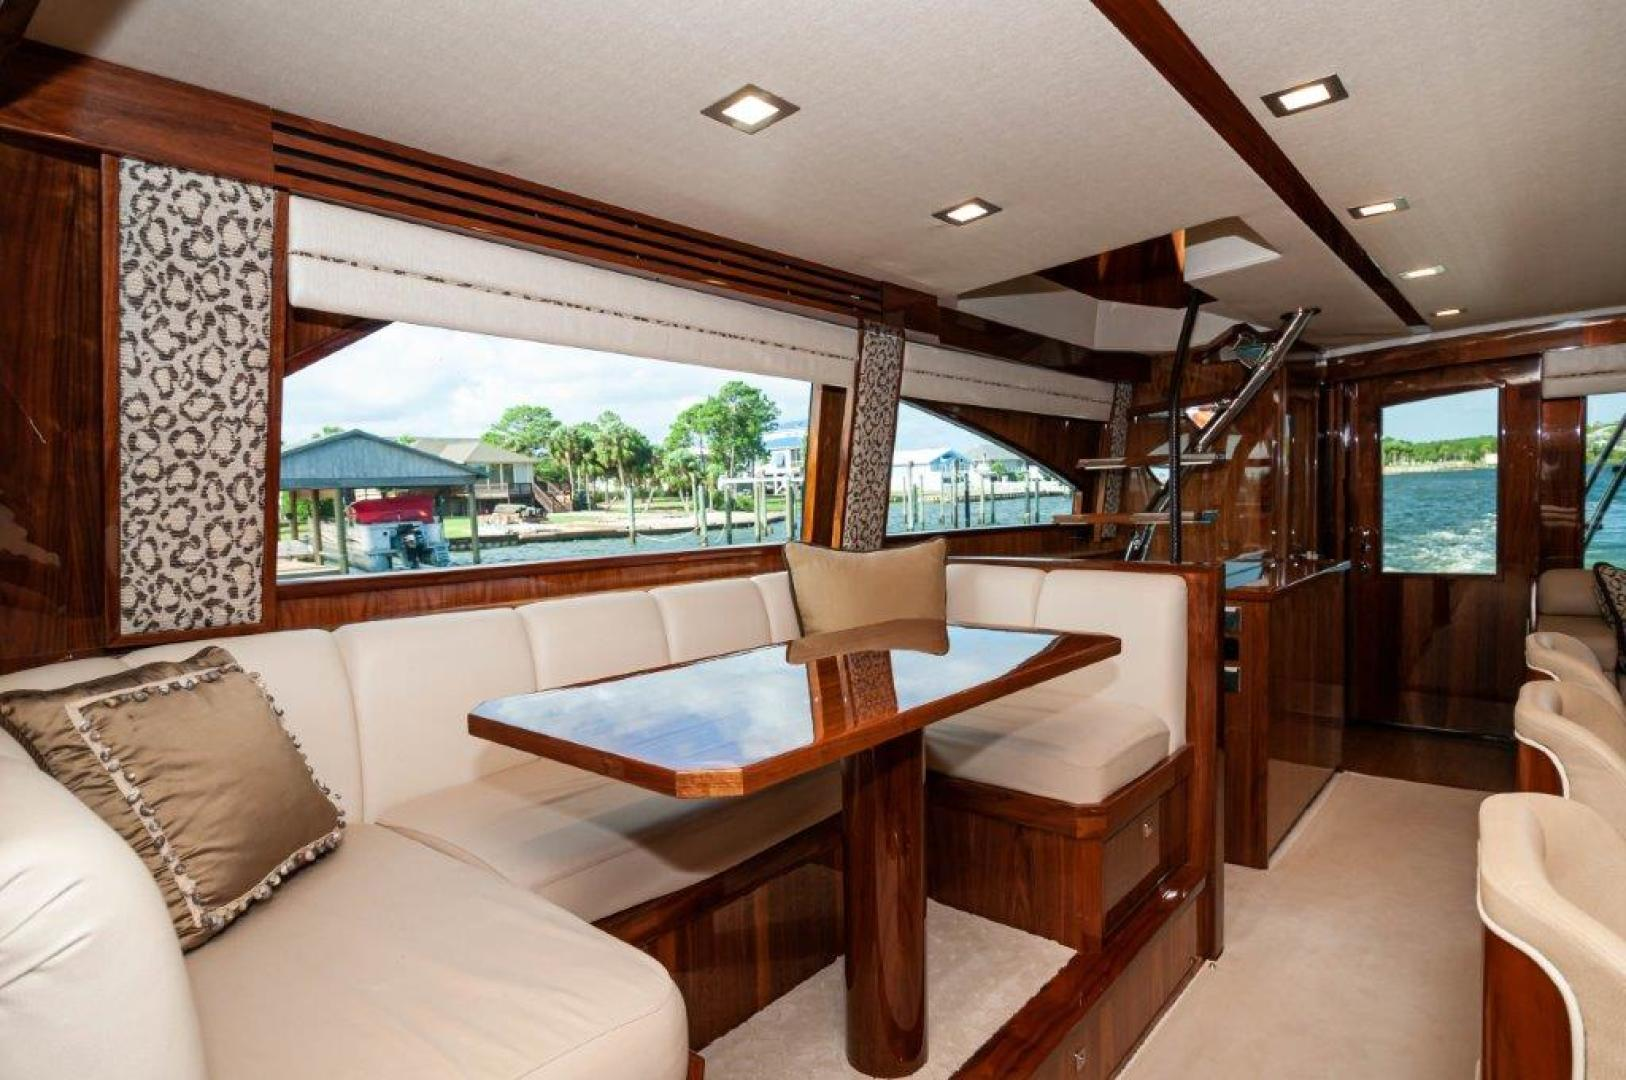 Viking-72 Enclosed Bridge 2017-SHARE E Orange Beach-Alabama-United States-2017 72 EB Viking SHARE-E  Dining-1233229 | Thumbnail